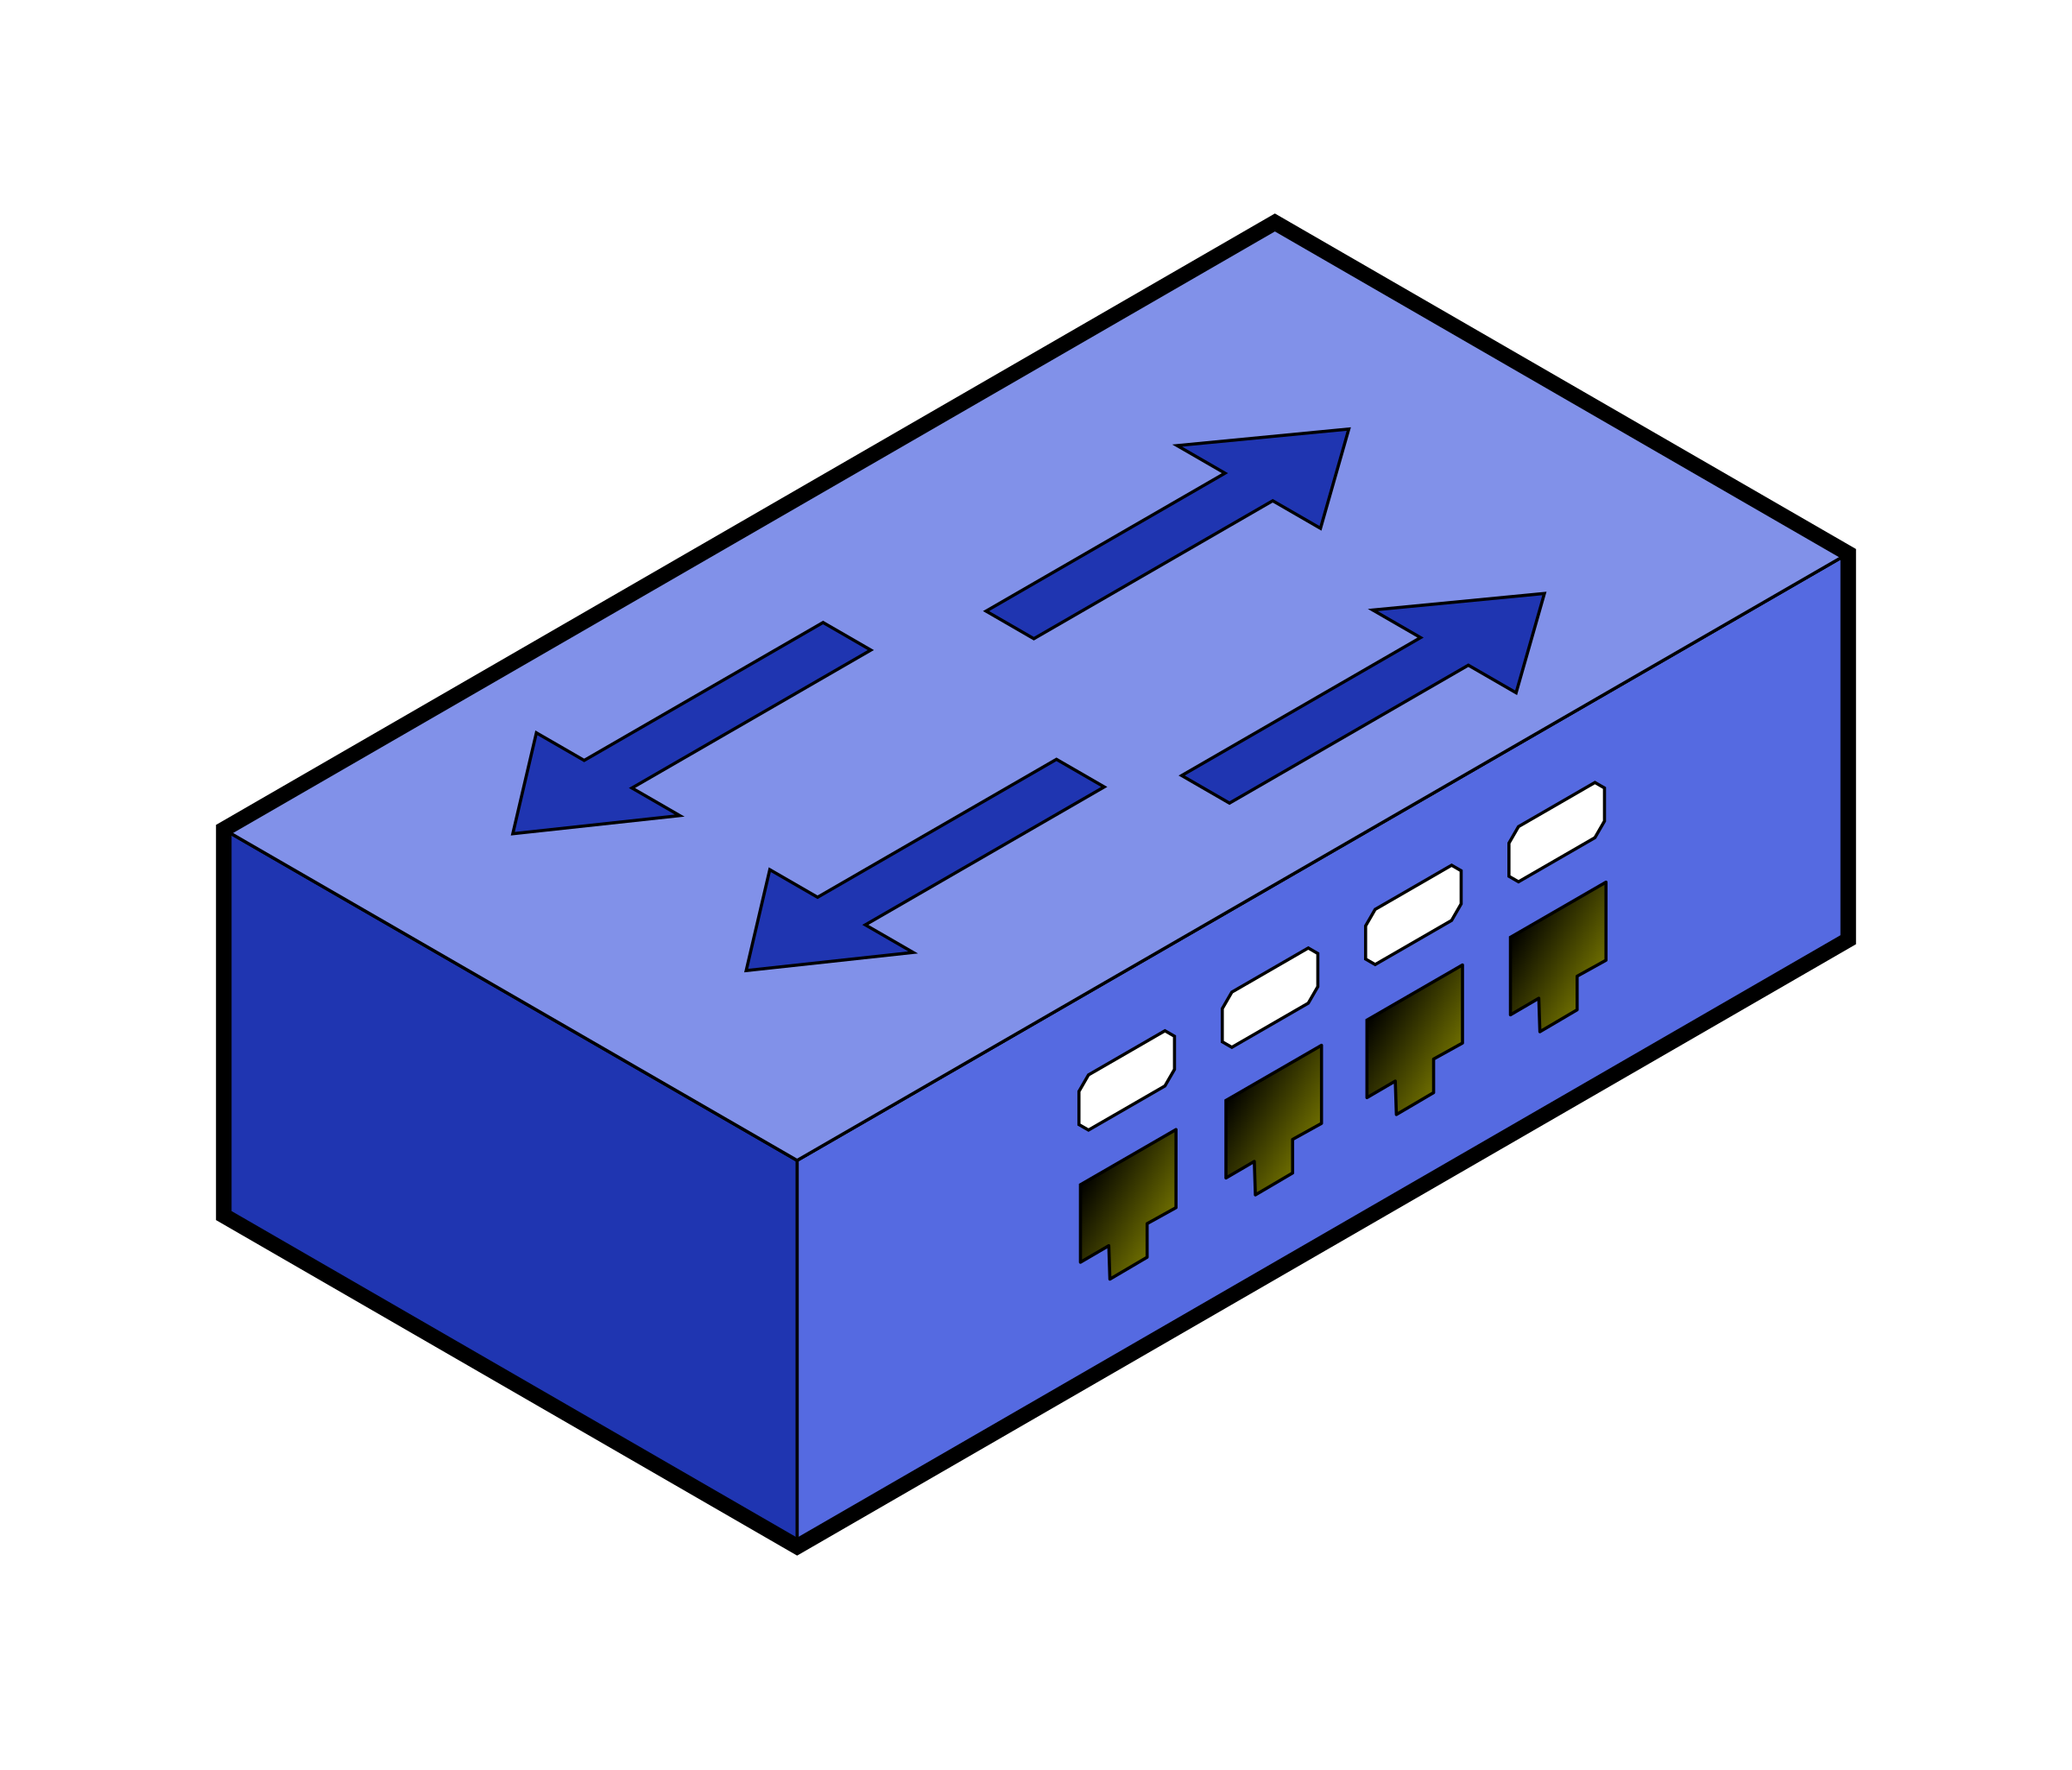 isometric switch with border by Fabuio